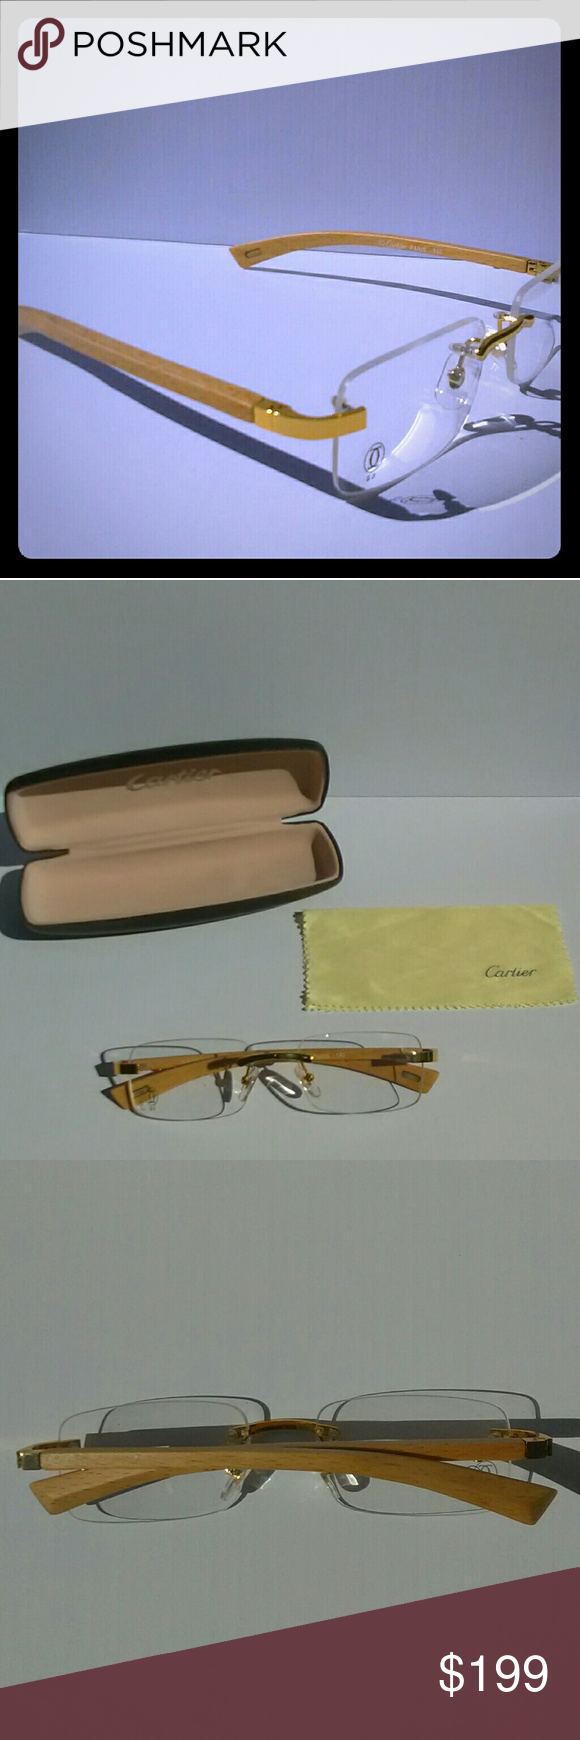 Vintage Cartier Wood/Gold Rimless Glasses FRAME: Classic Wood & Gold ...